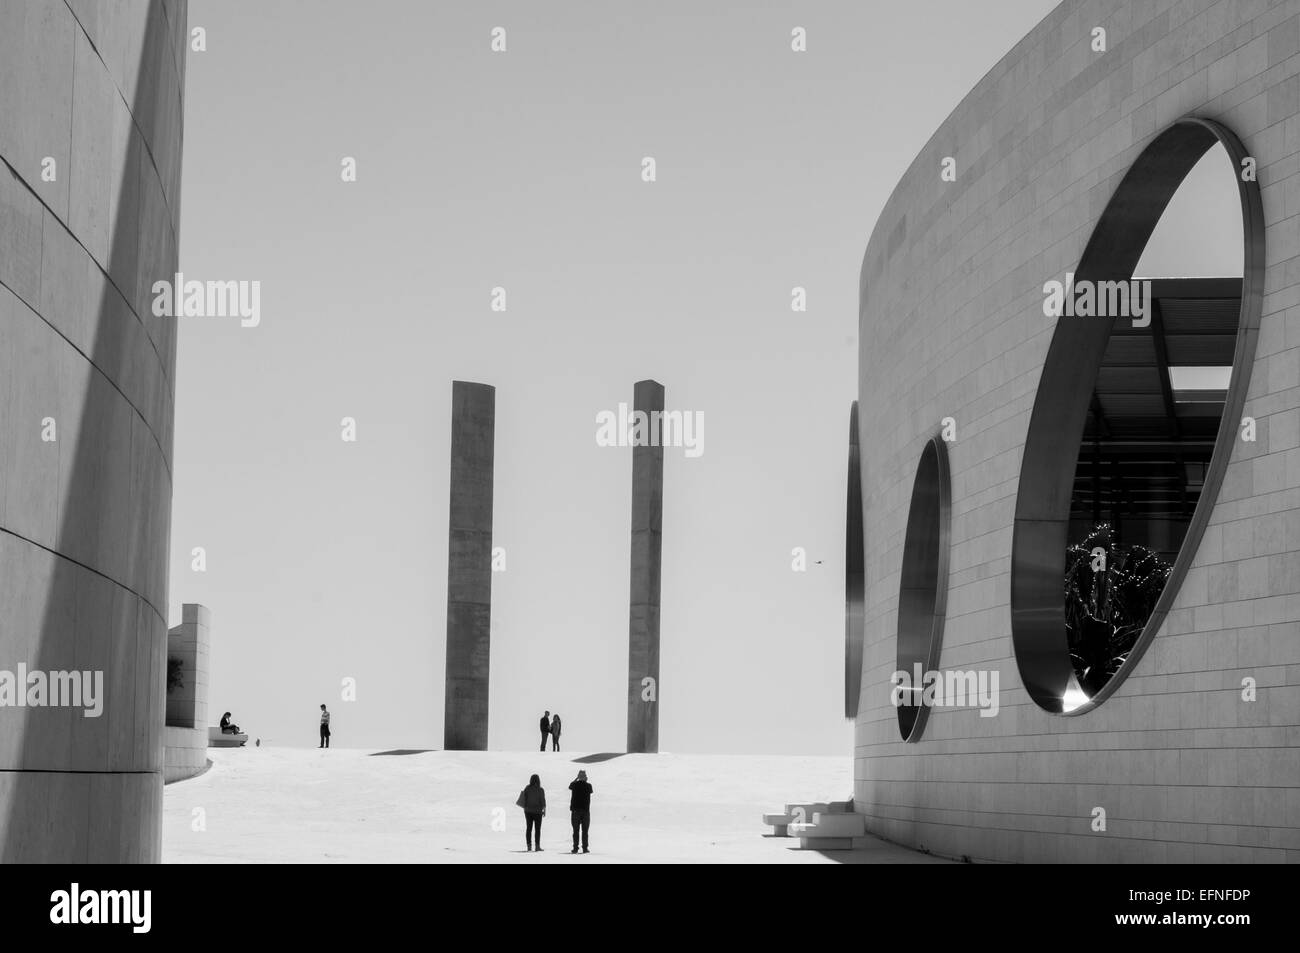 Black and white photo of people walking by the areas around Champalimaud Foundation in Lisbon. - Stock Image